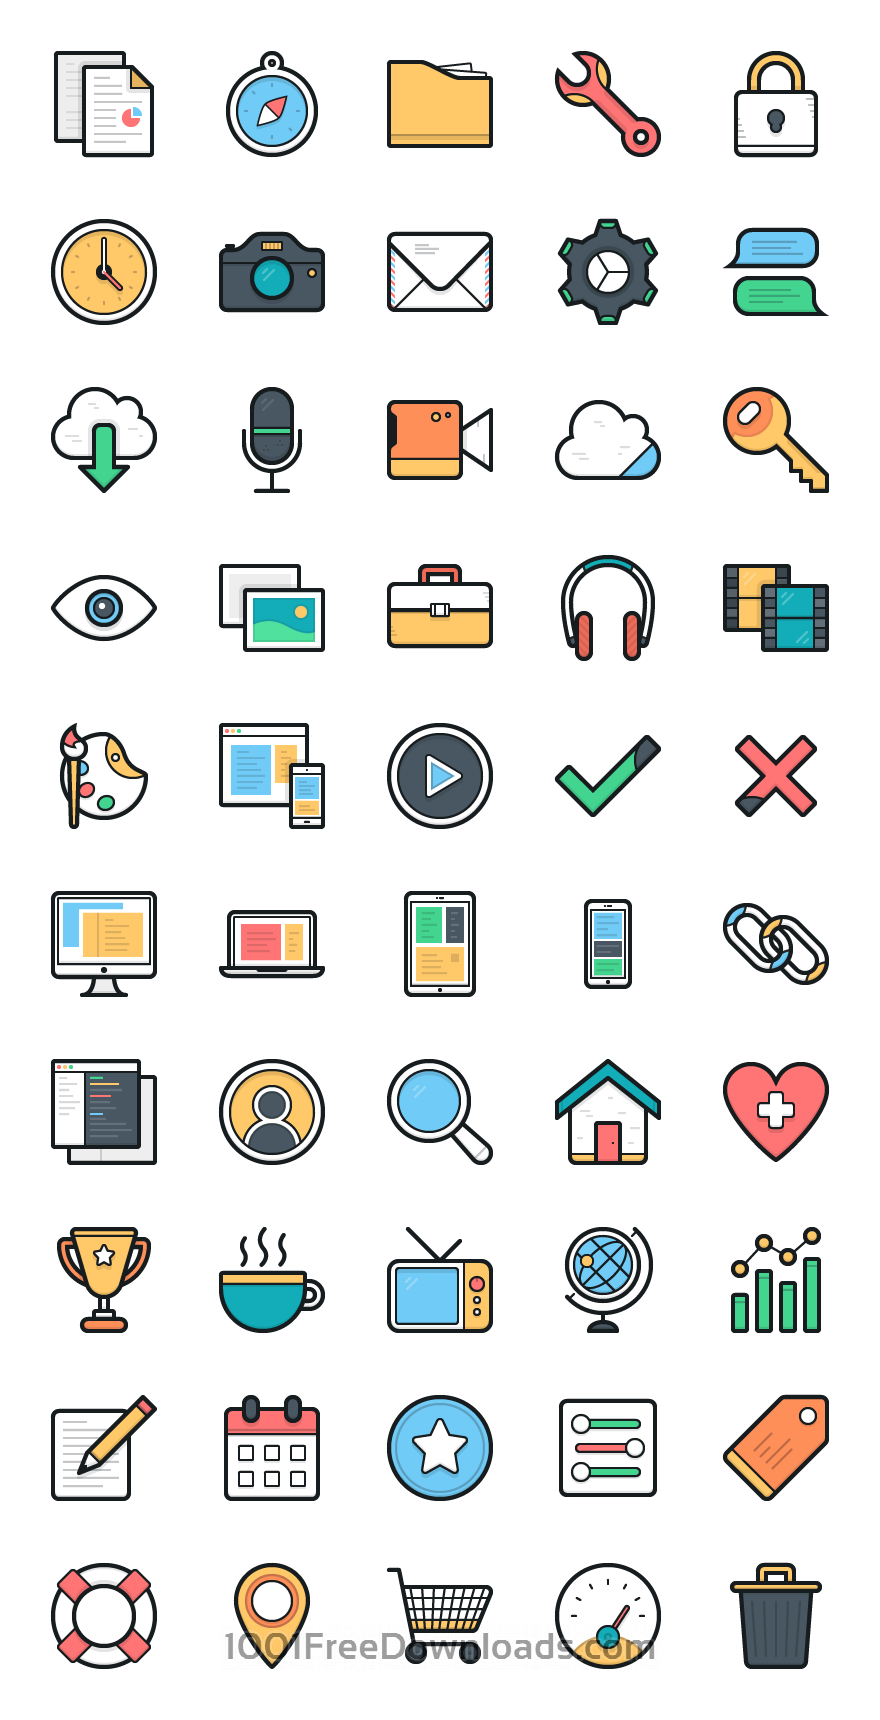 free download 100 lulu vector icons mightydeals